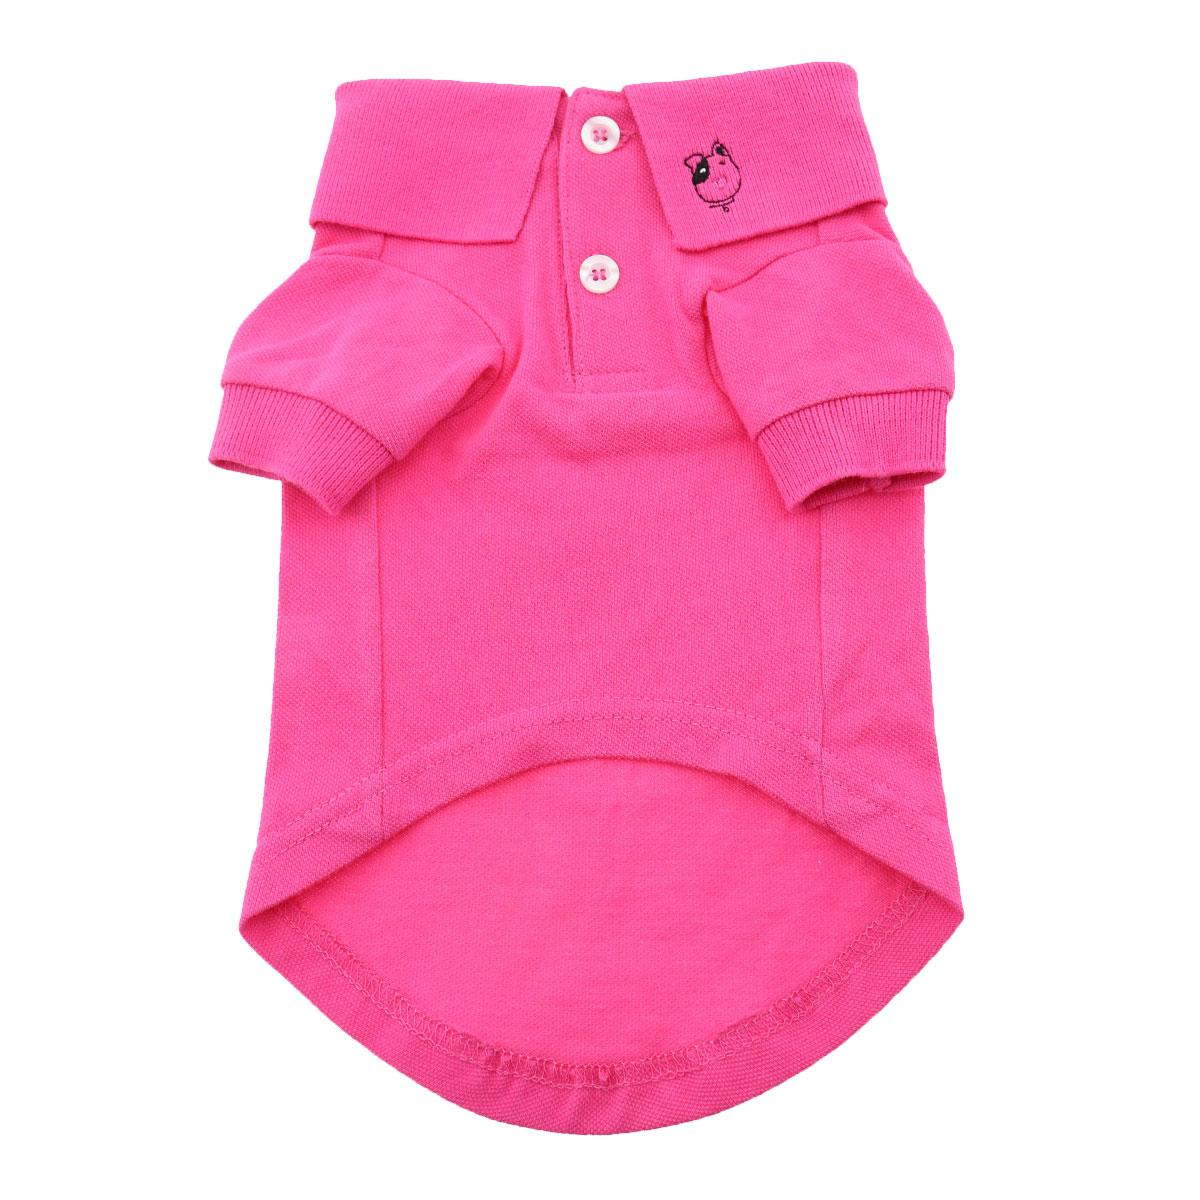 Doggie Design Polo Shirt for Dogs, Solid Raspberry Sorbet, Medium